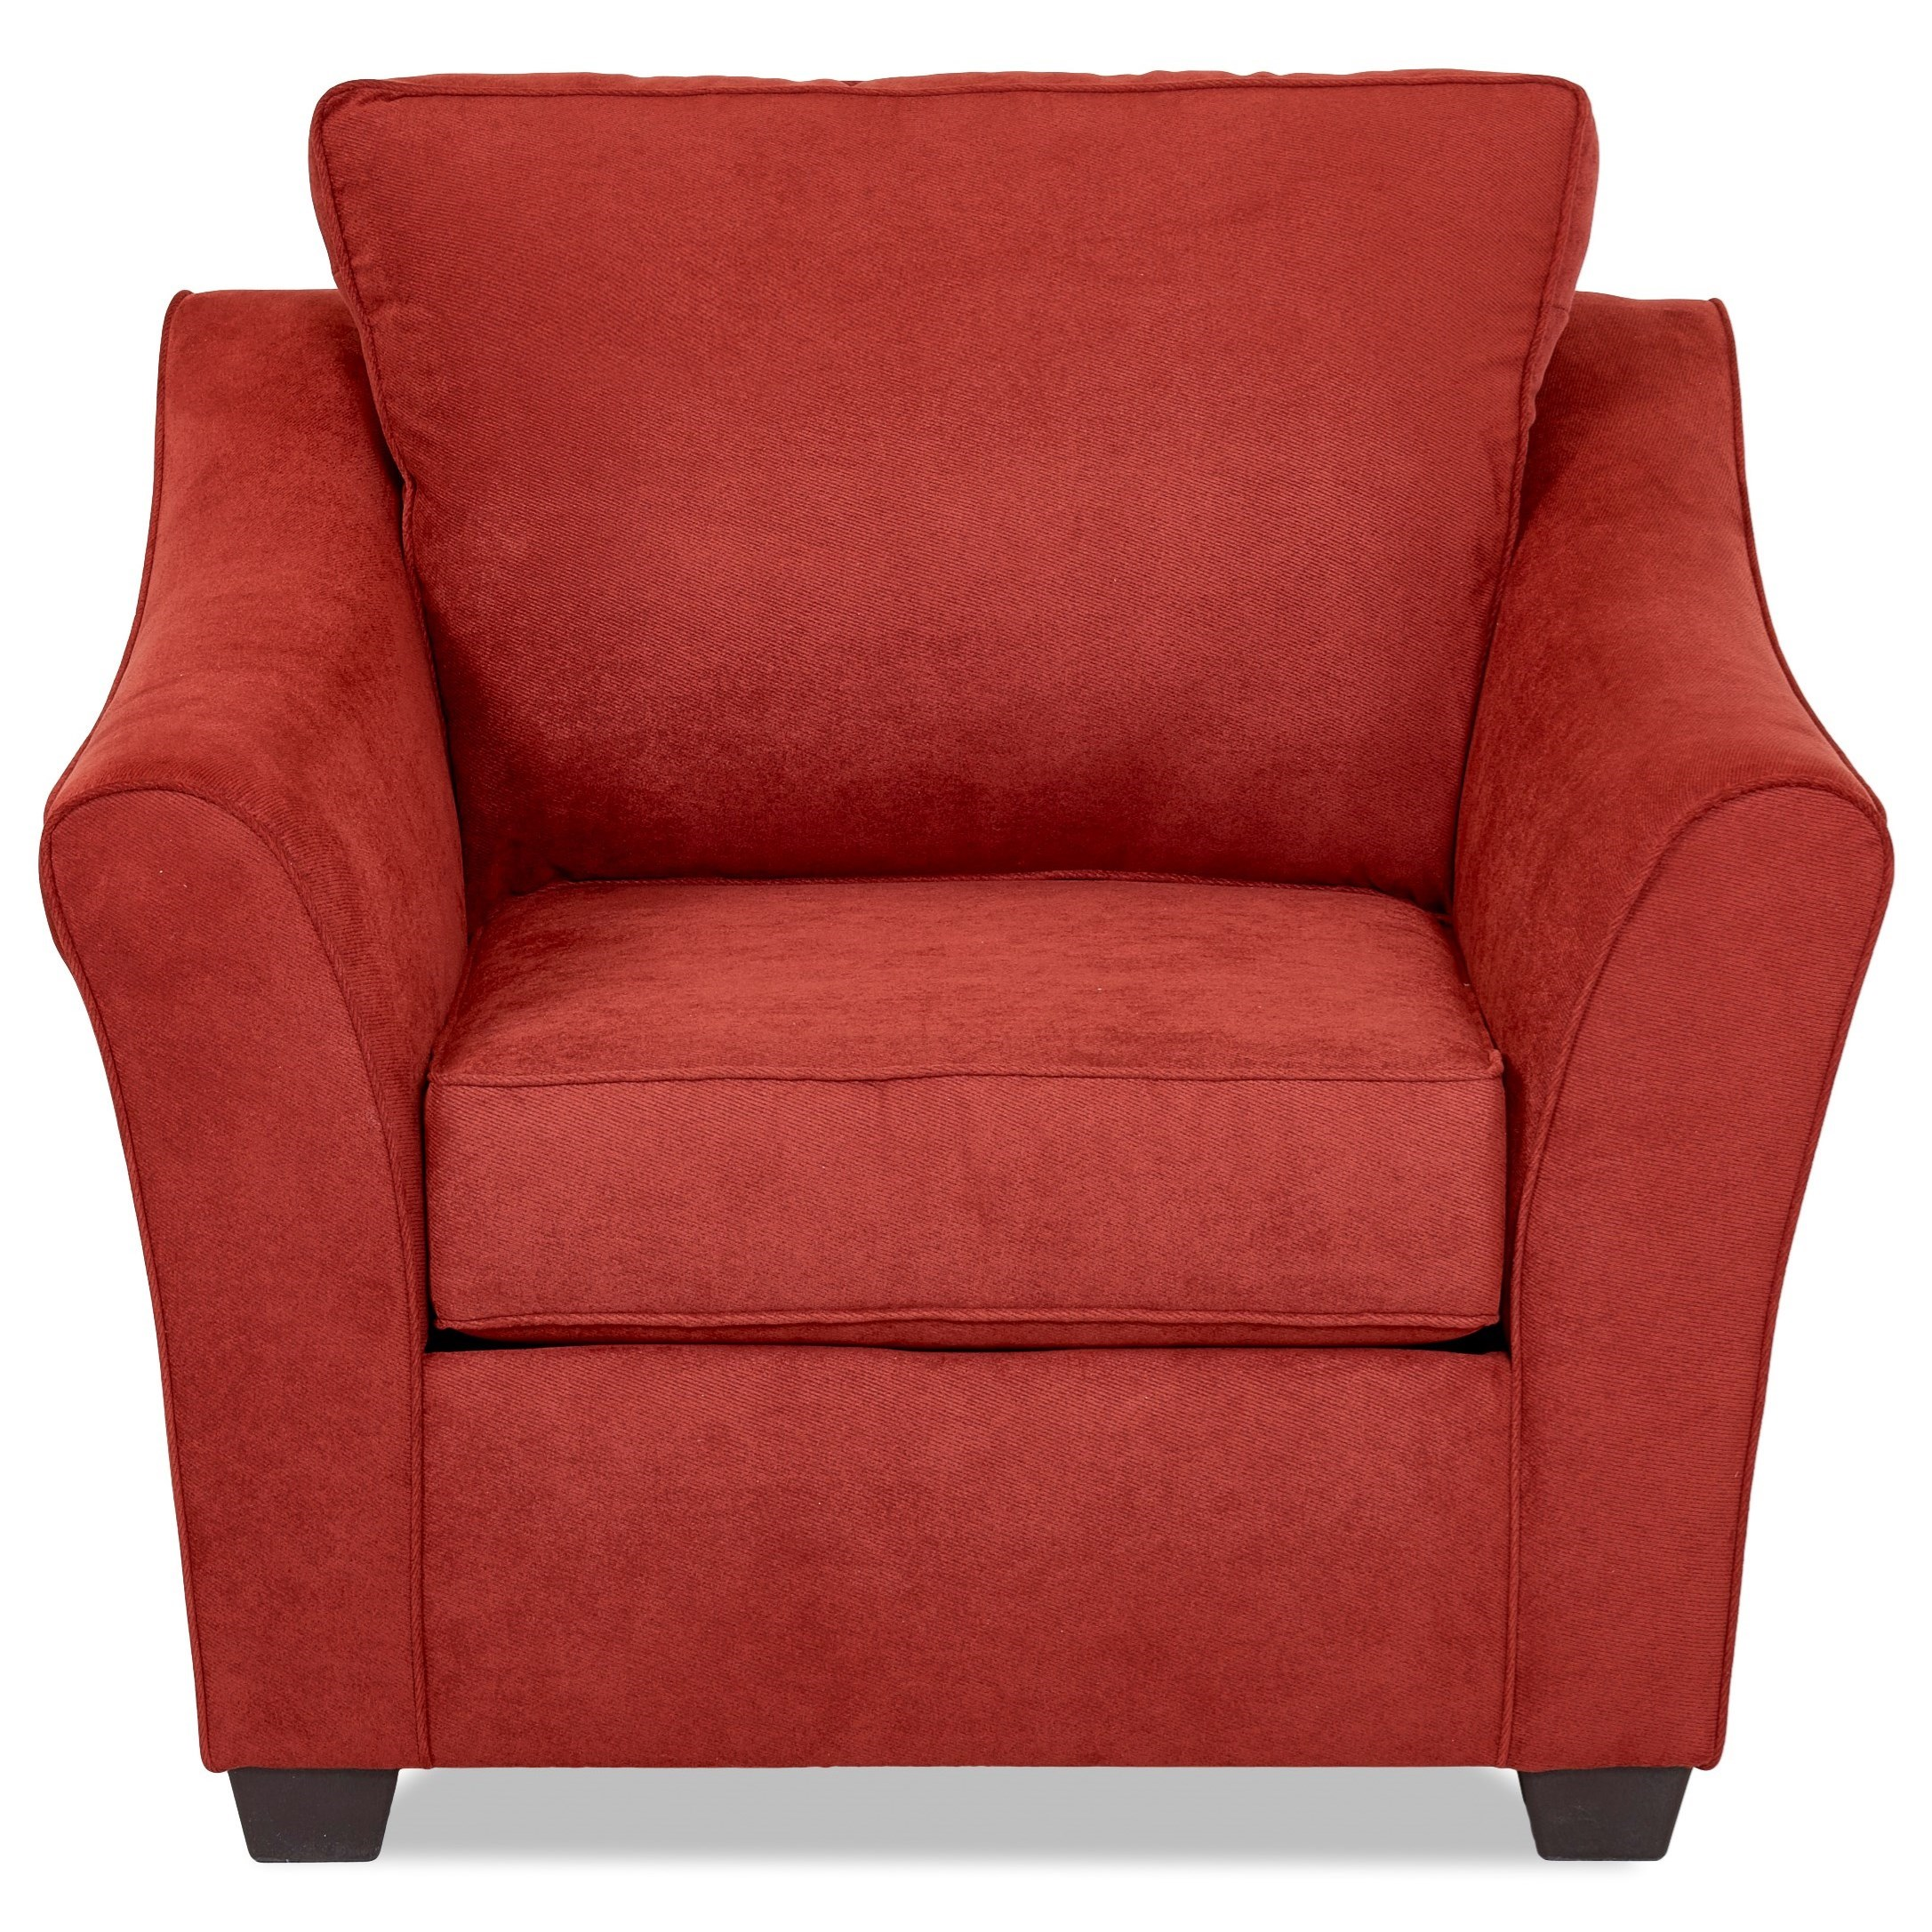 Contemporary Chair with Flared Arms